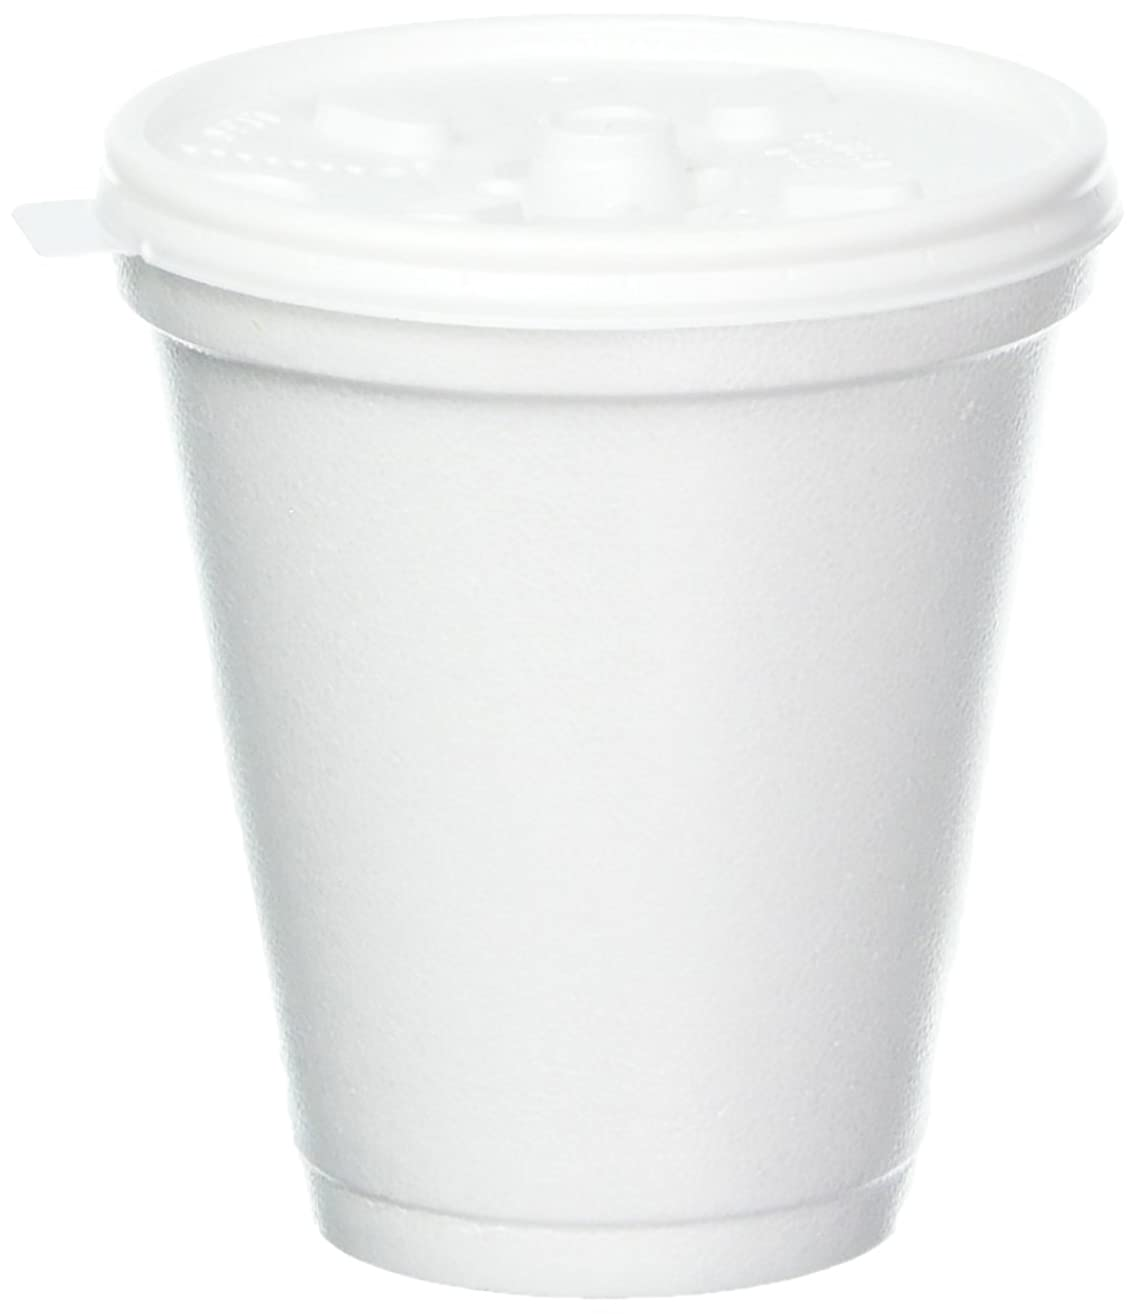 Dart 8 Oz White Disposable Coffee Foam Cups Hot and Cold Drink Cup (Pack of 100 with lids)